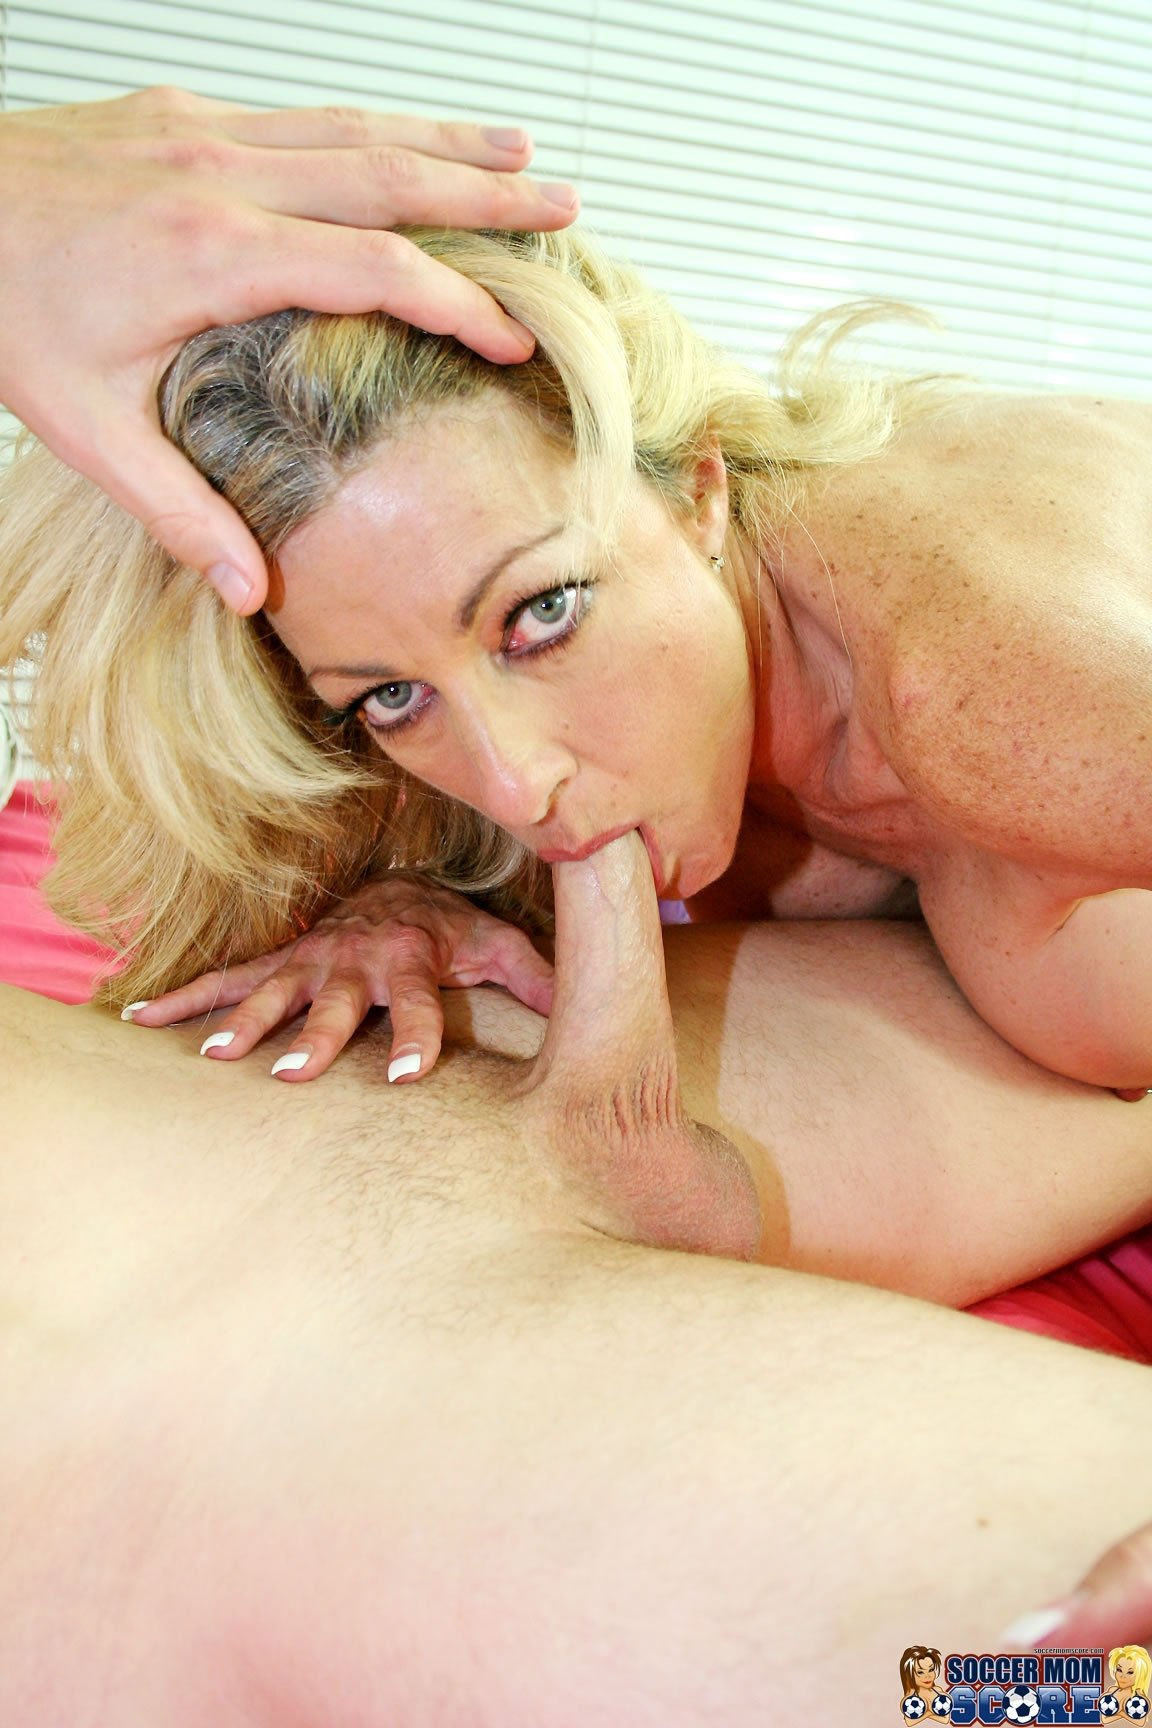 best of big tits bouncing xnxx